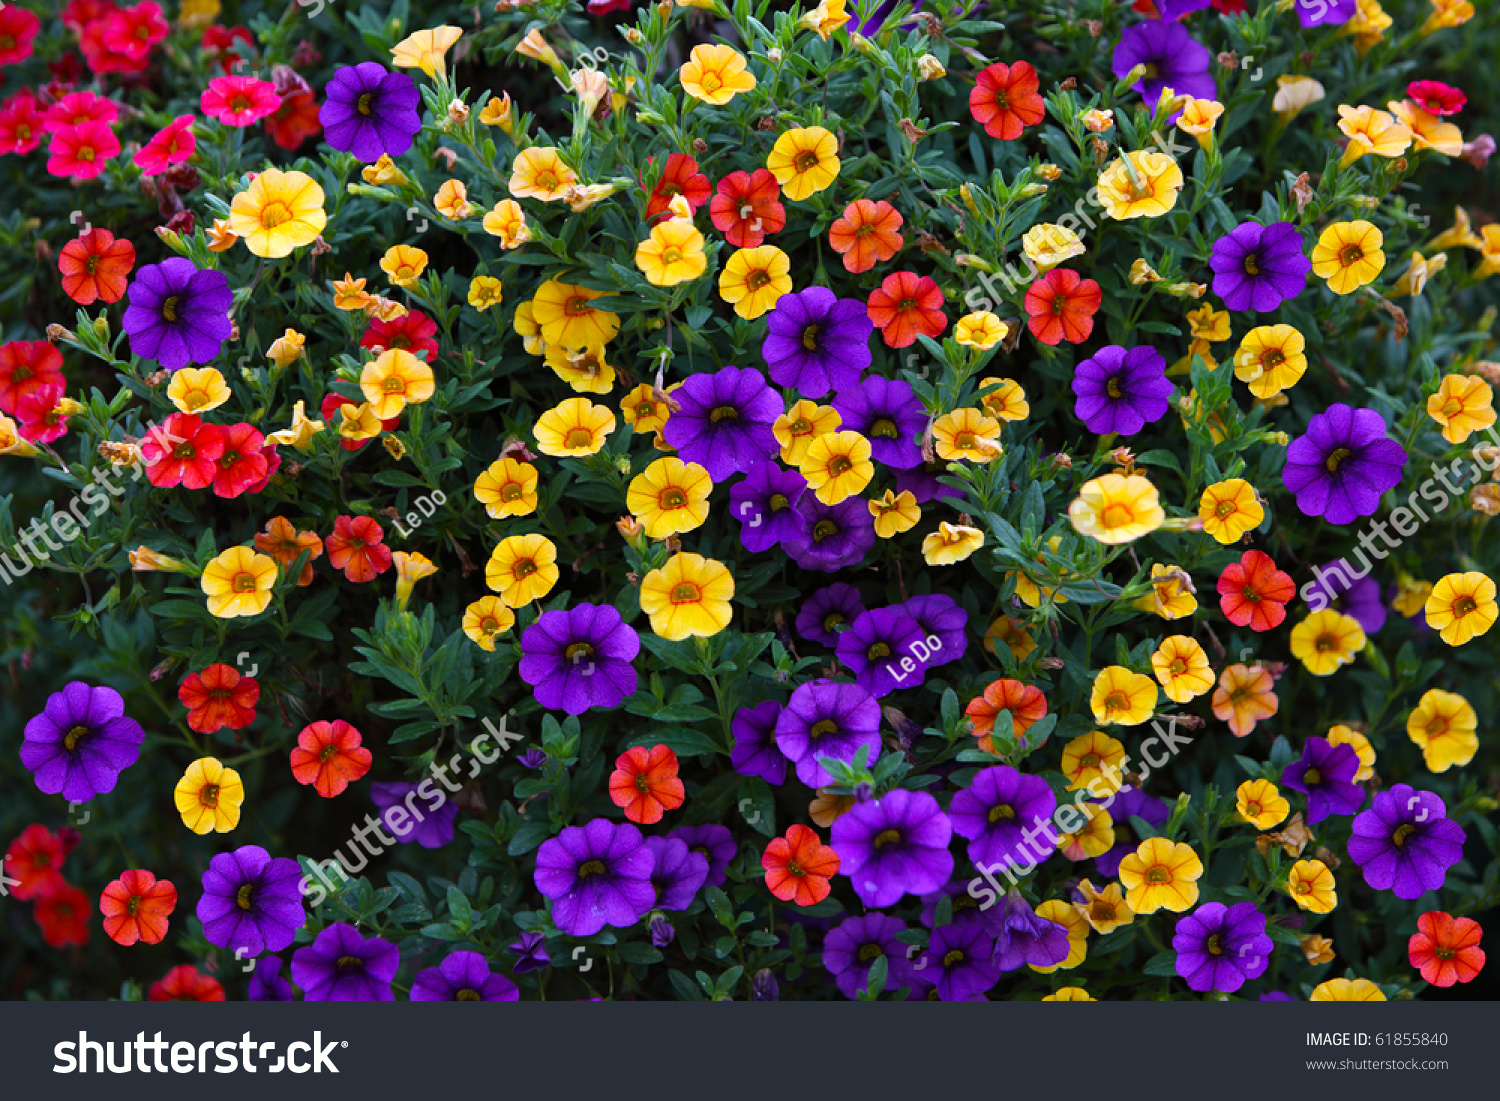 Petunias flowers different colors natural background stock for What makes flowers different colors